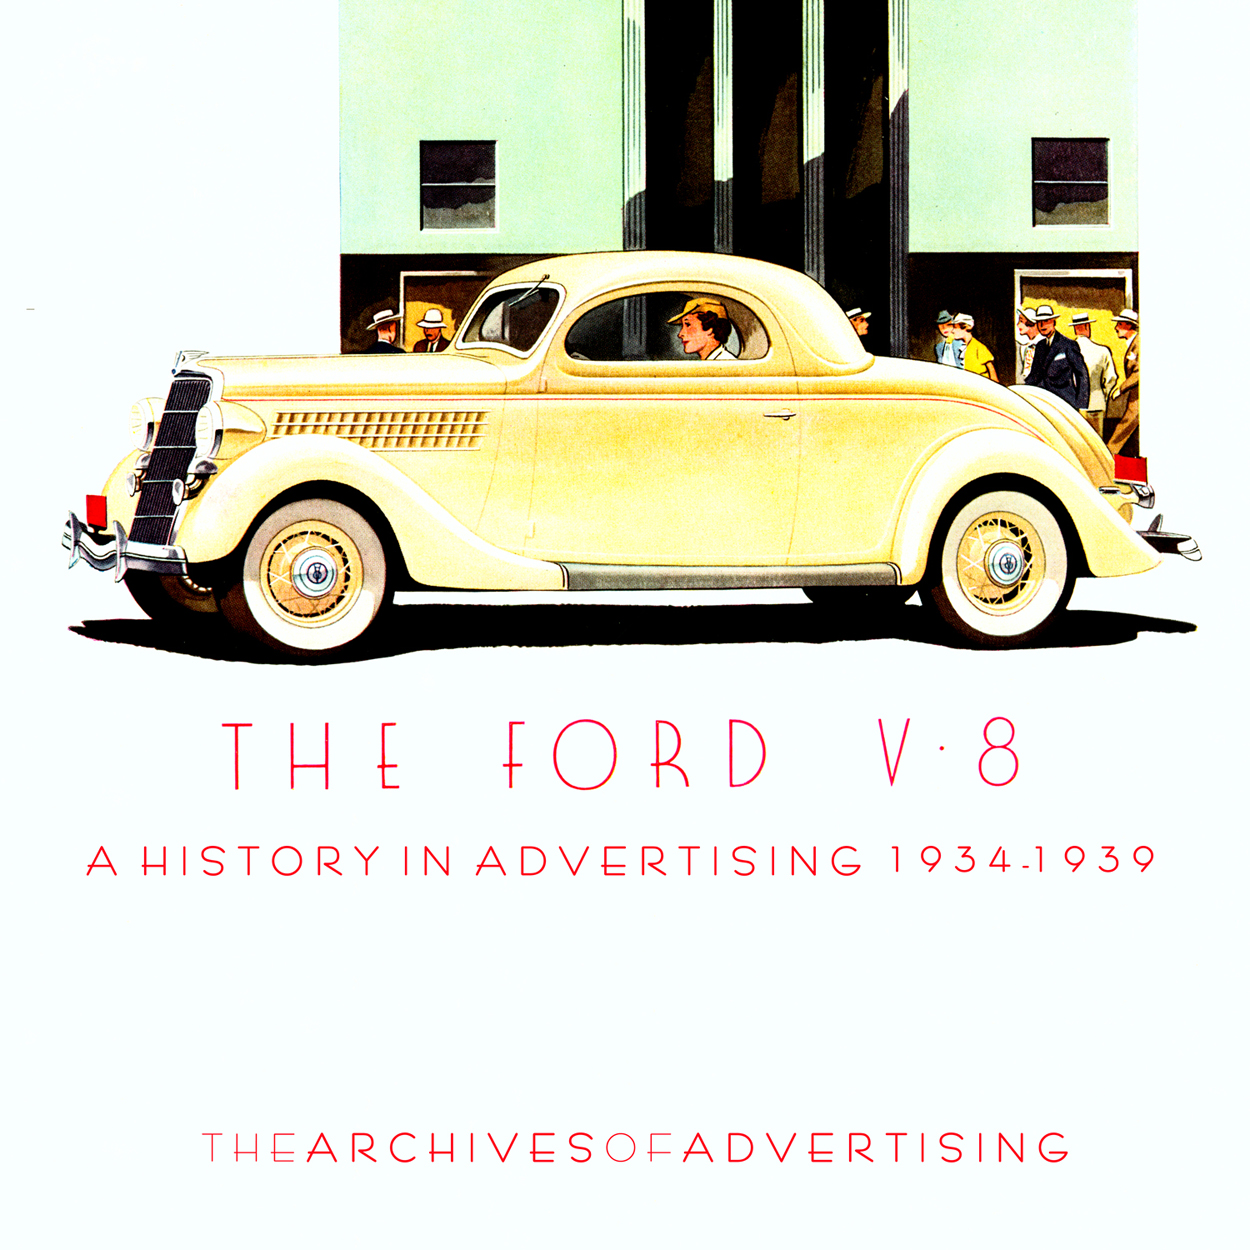 1934 1935 1936 1937 1938 1939 Ford V-8 V8 ad CD-ROM: 160+ ads!